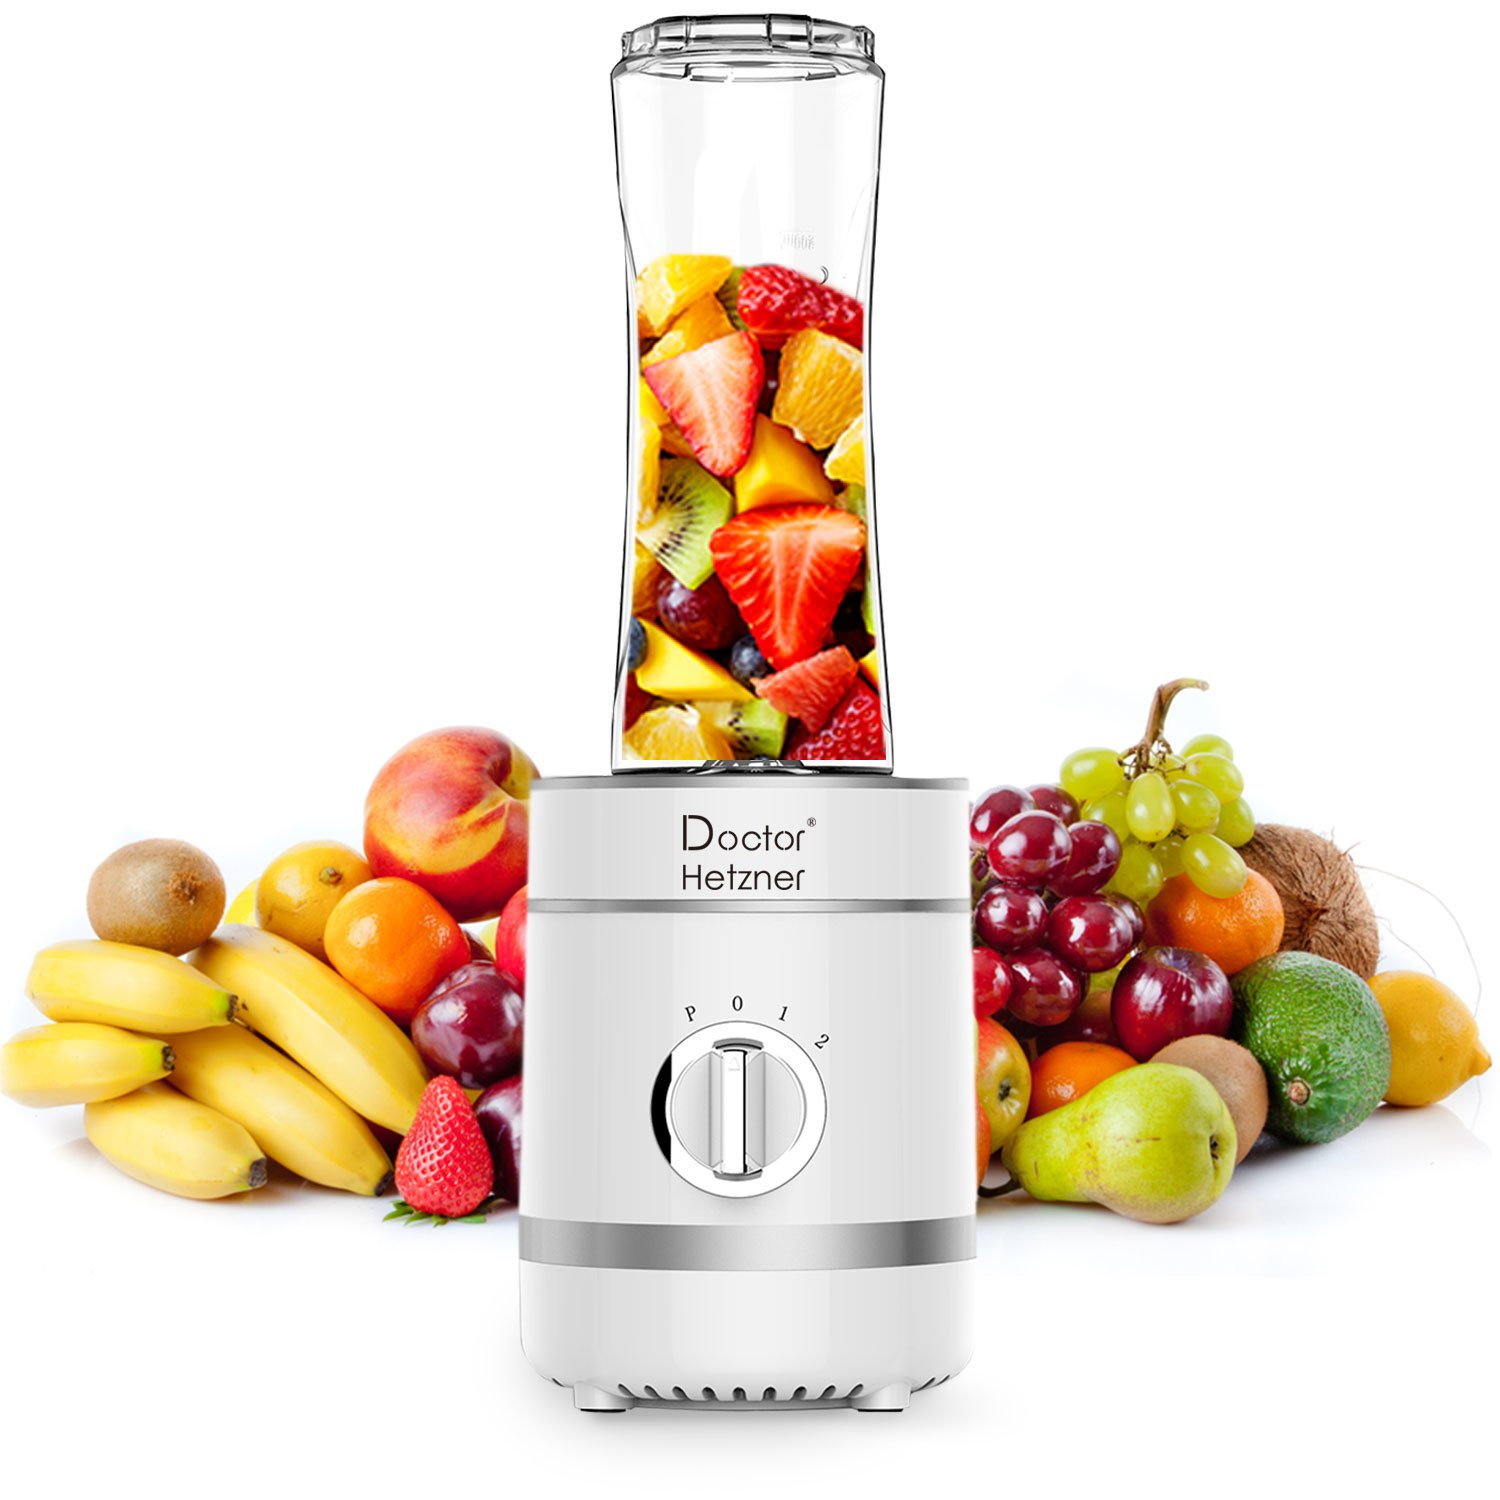 Doctor Hetzner, Personal Blender for Smoothies